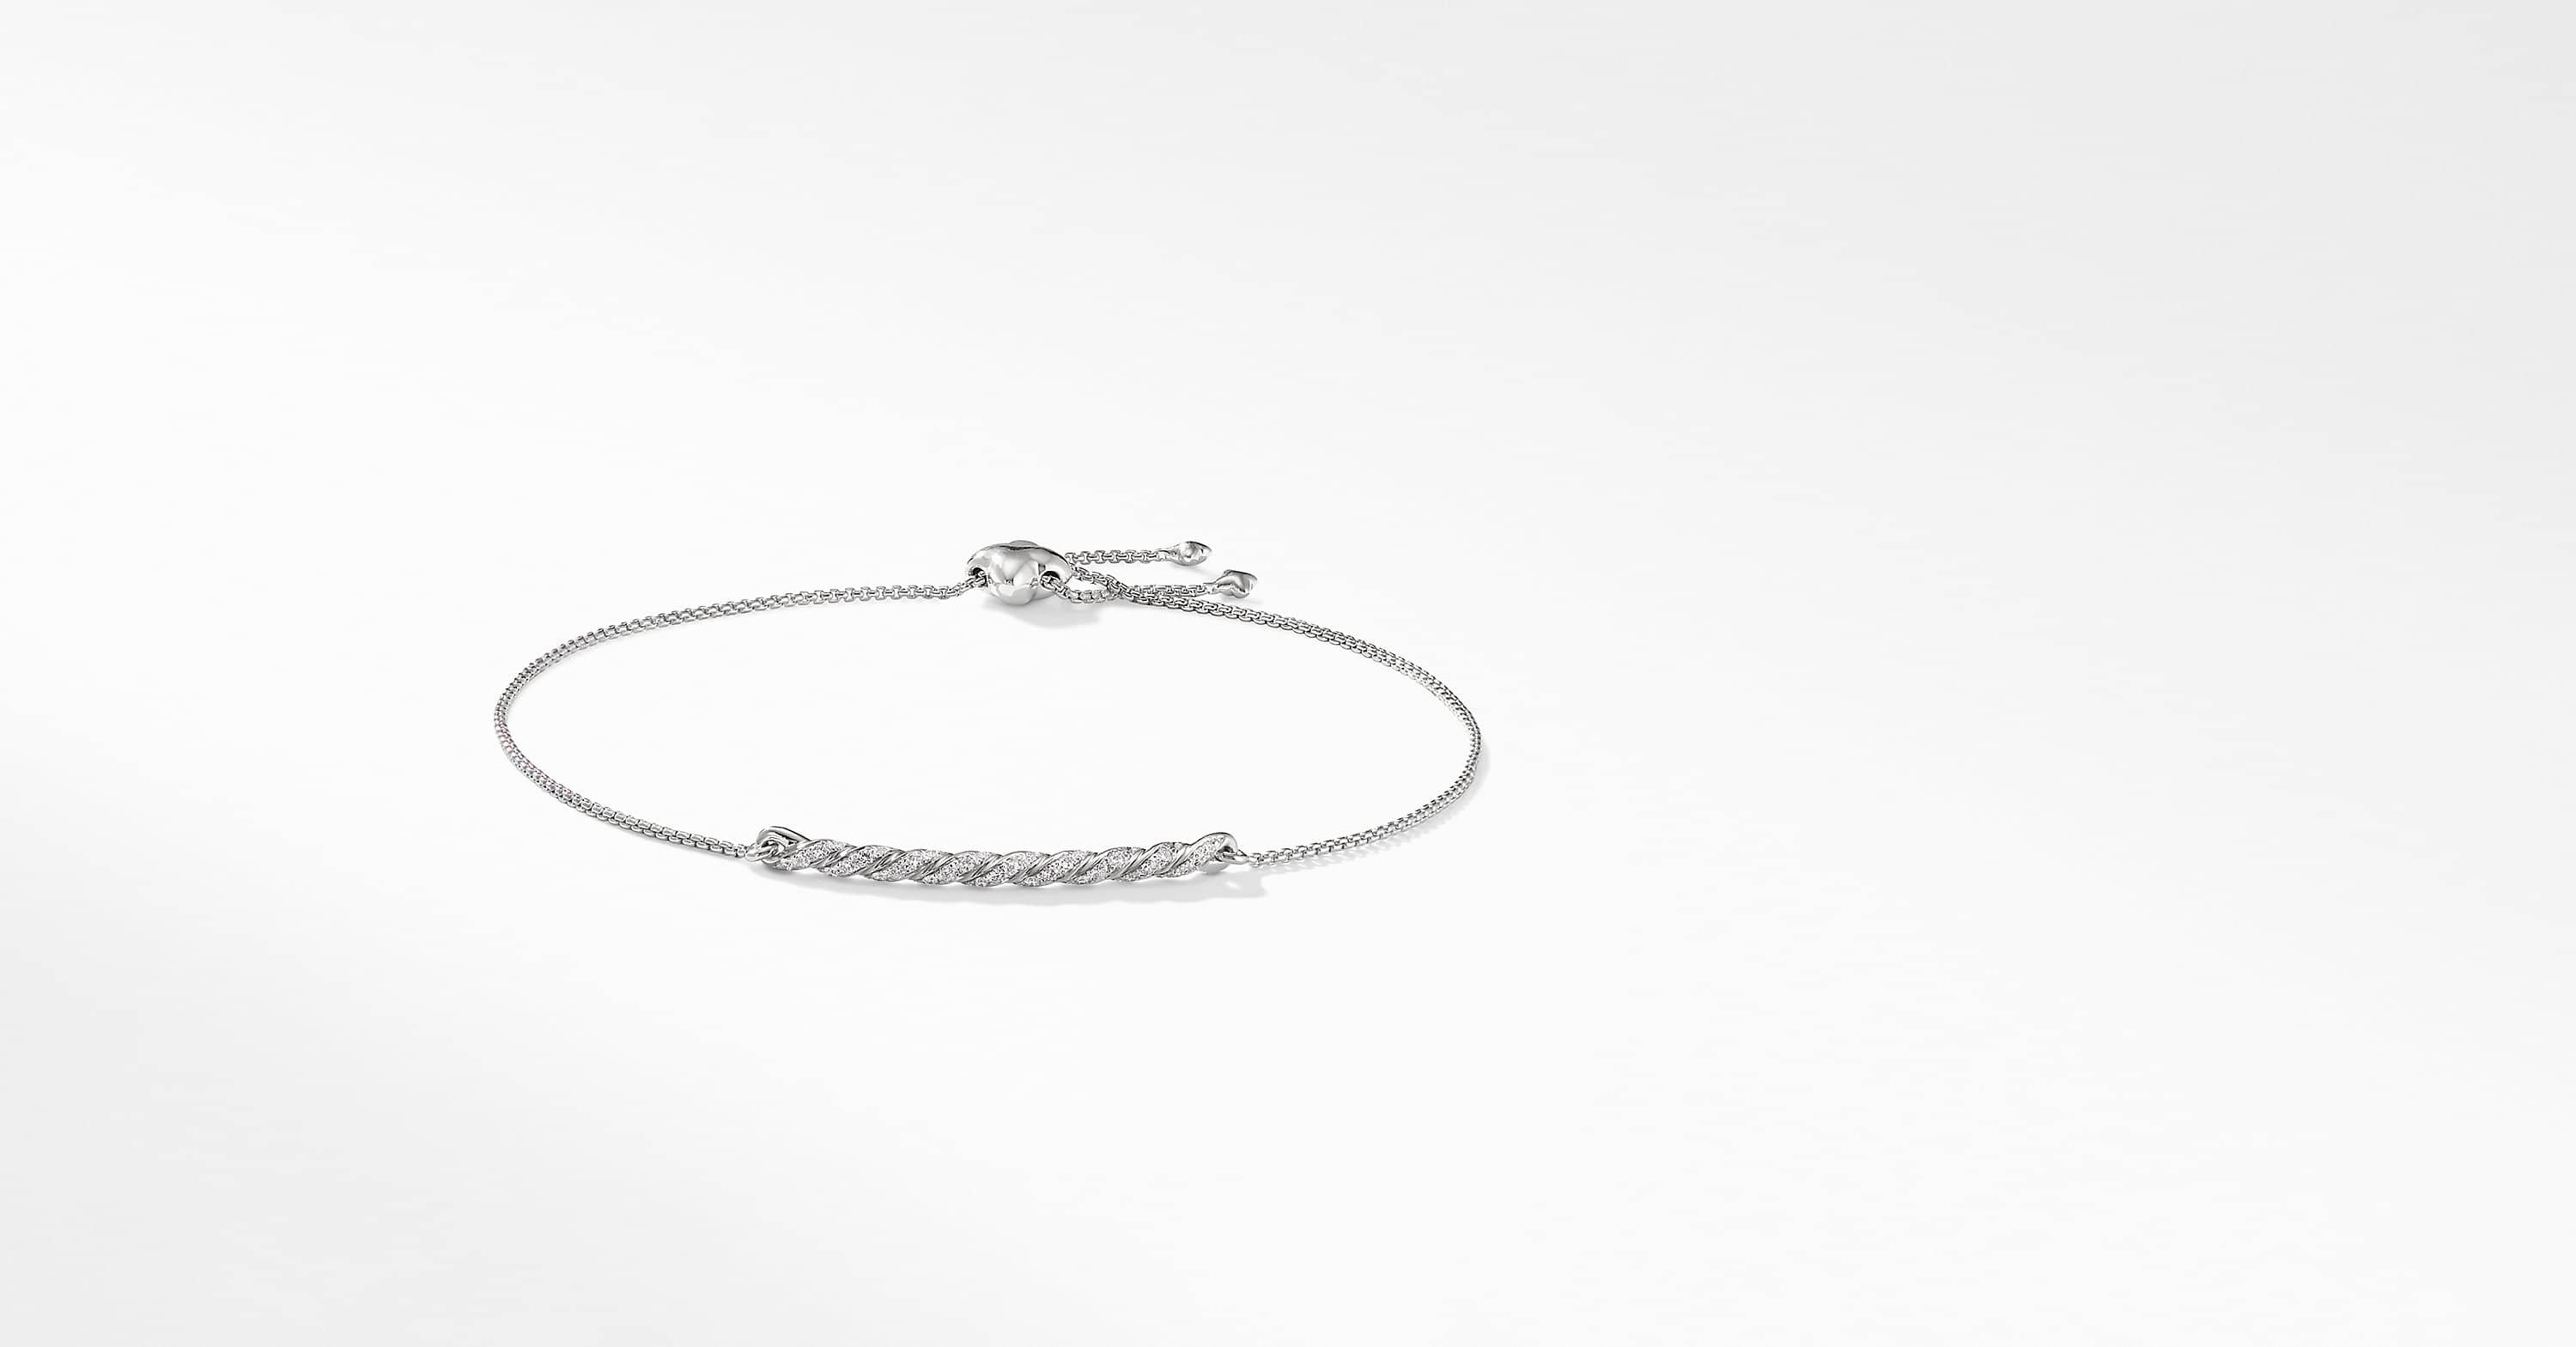 Pavéflex Station Bracelet with Diamonds in 18K White Gold